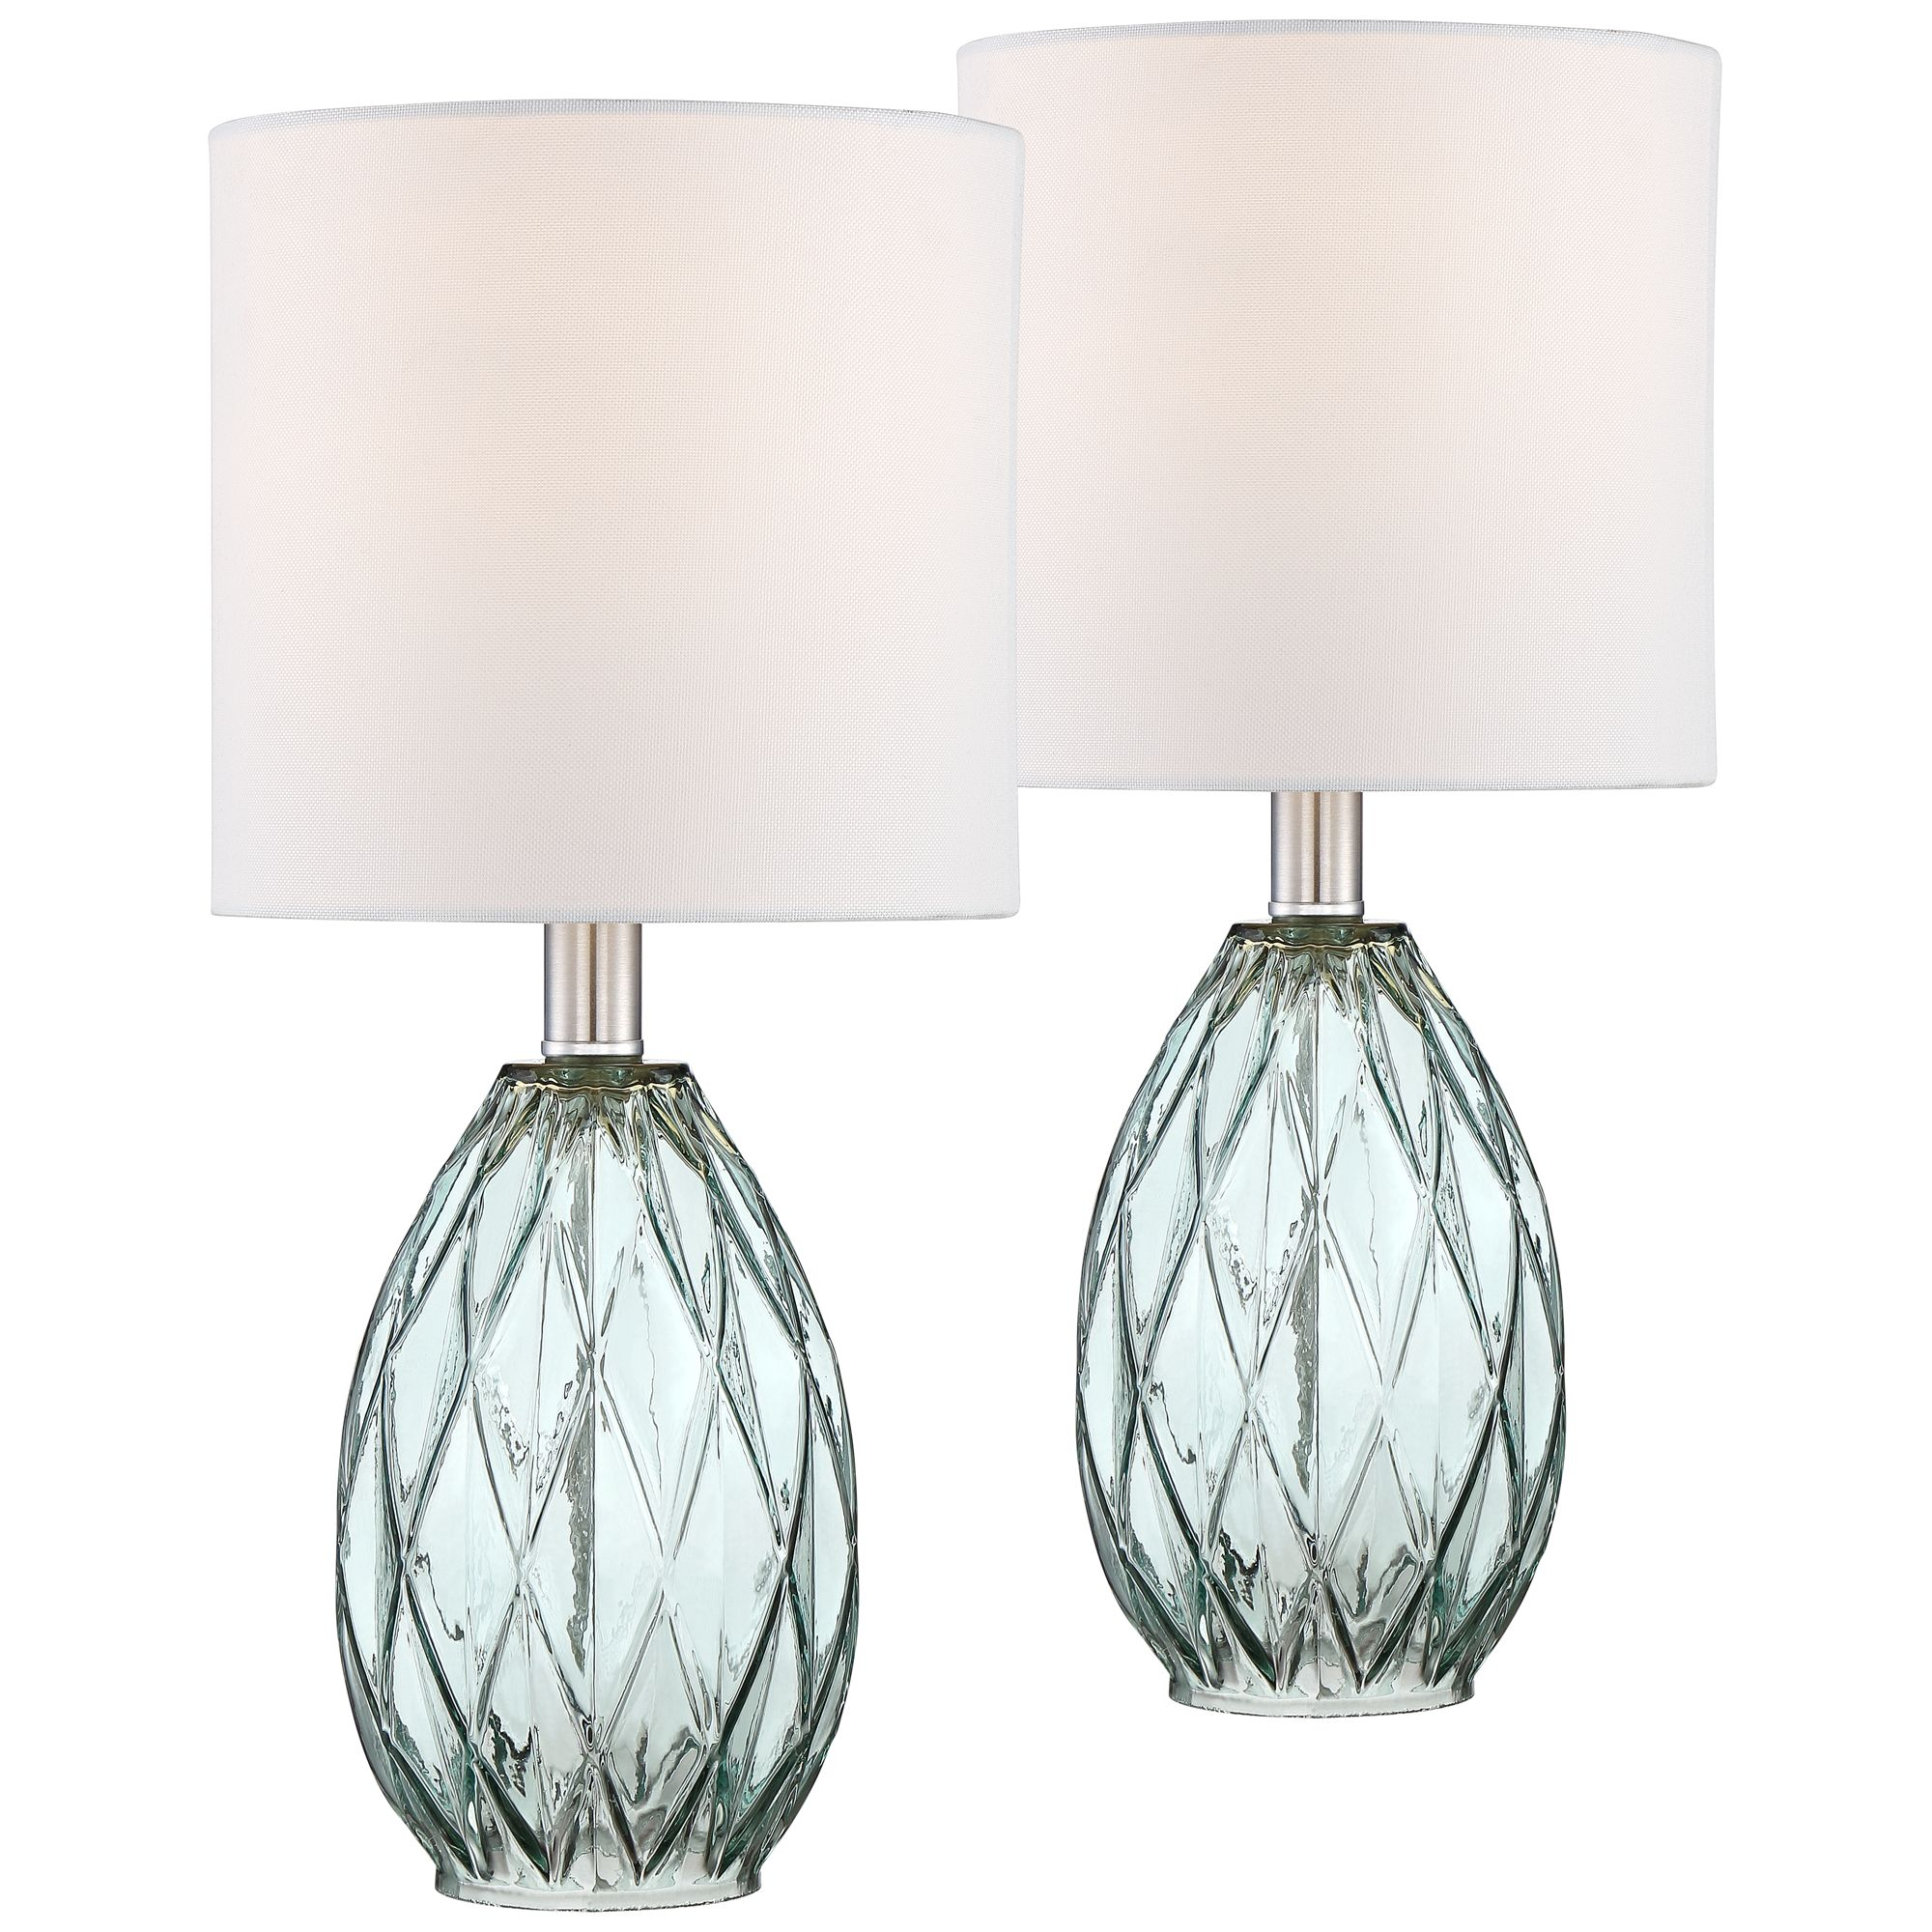 lighting rita blue green glass accent table lamp set departments elm flooring rustic coffee plans small dark wood console end with light west industrial storage clip wrought iron